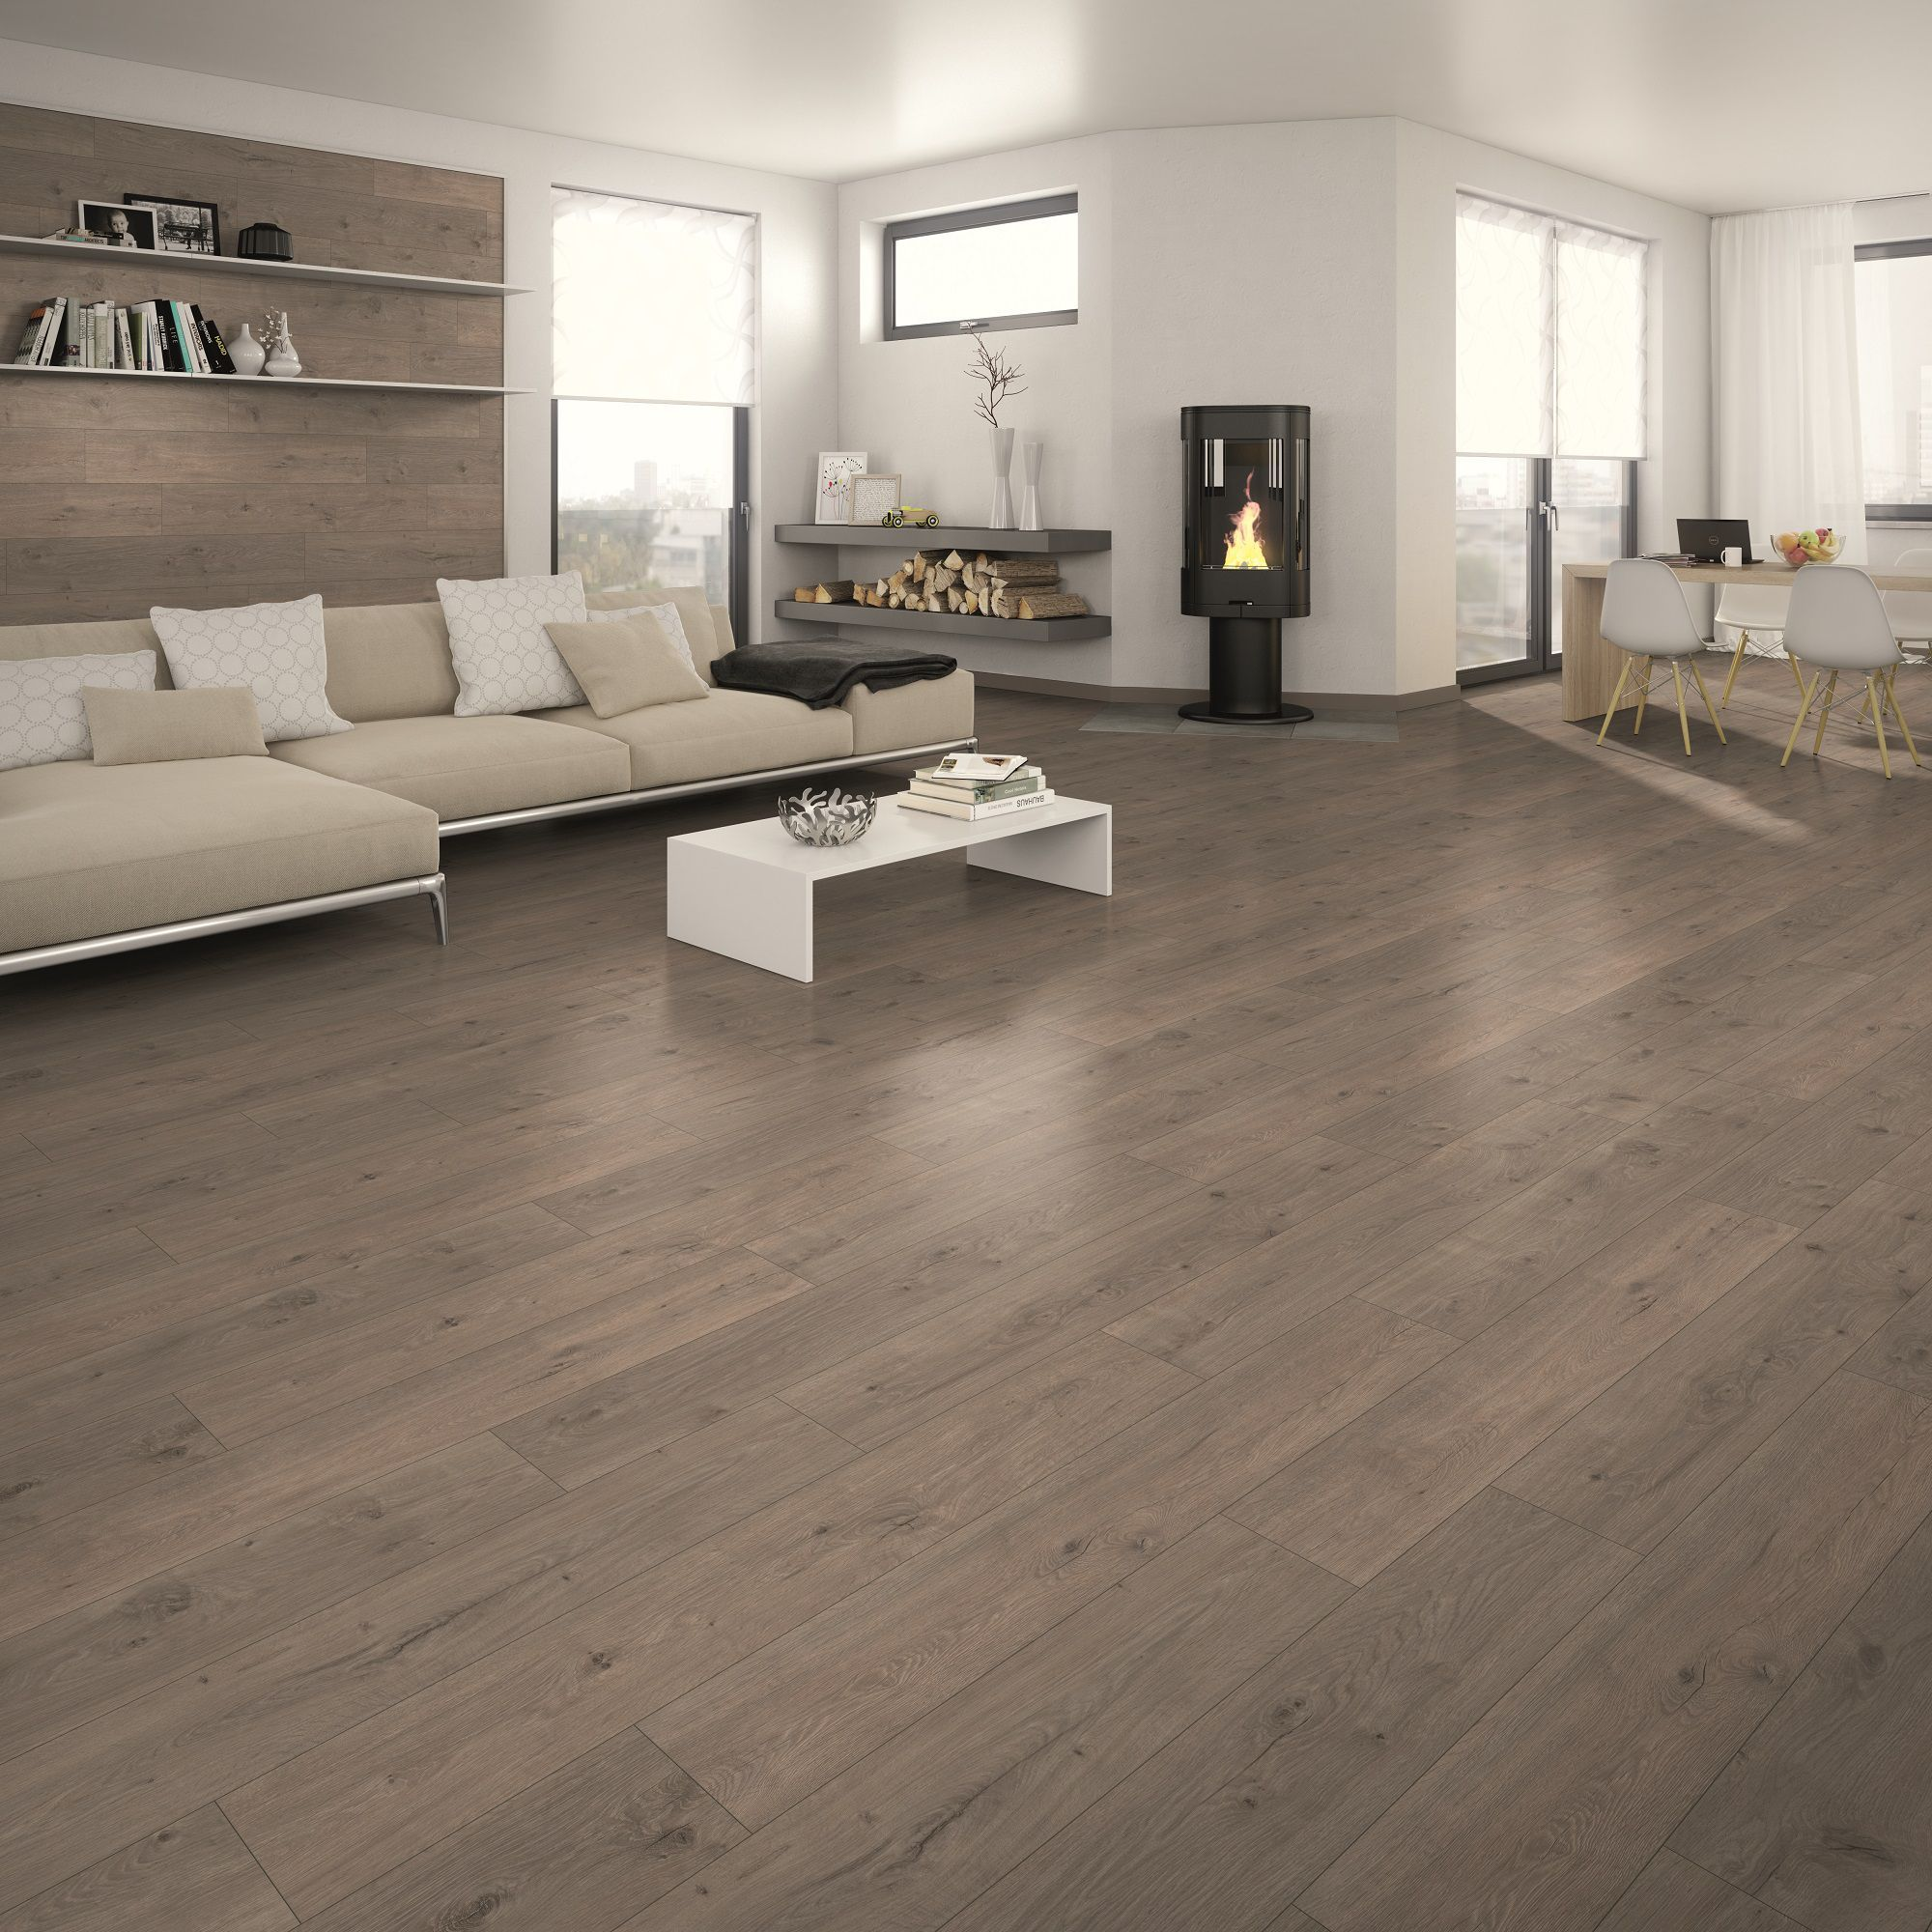 Marapi Grey Laminate flooring 1.736 m² Departments DIY